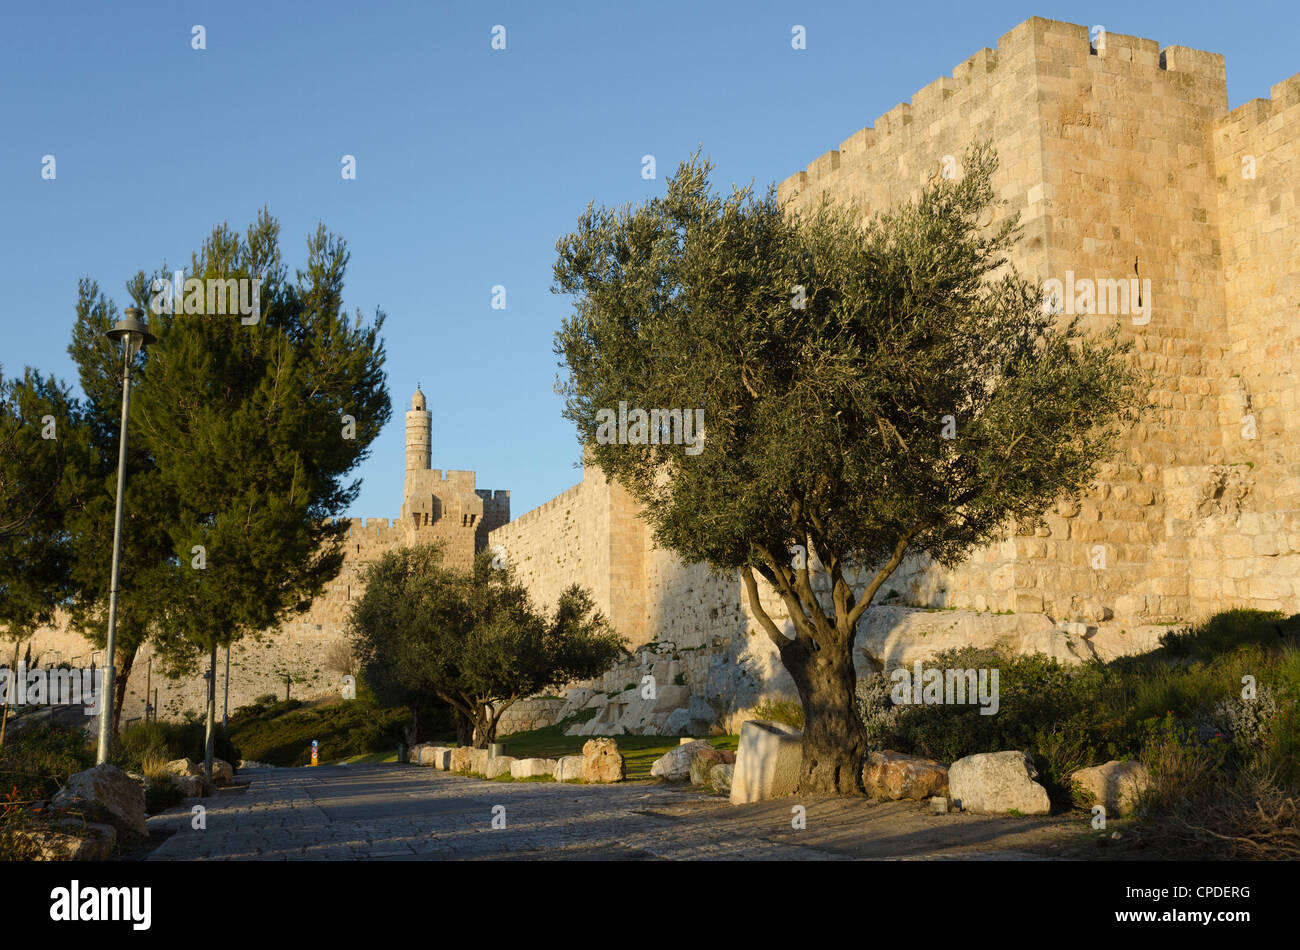 View at sunset of the city walls promenade with Tower of David in background, Old City, Jerusalem, Israel, Middle - Stock Image